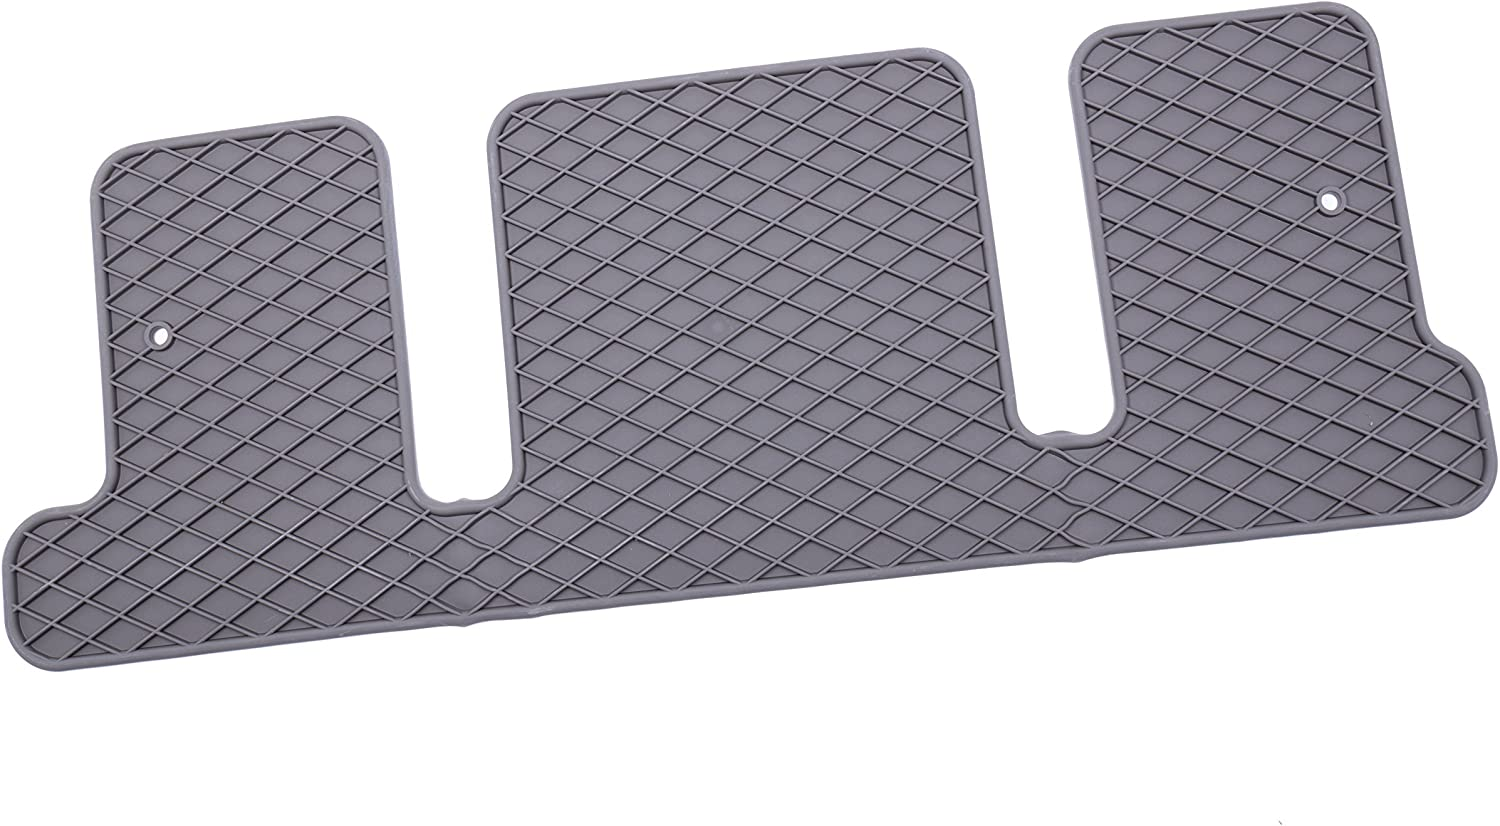 B00OHWFSM2 GM Accessories 22890531 Third-Row One-Piece All-Weather Floor Mat in Titanium 810uAqszYhL.SL1500_